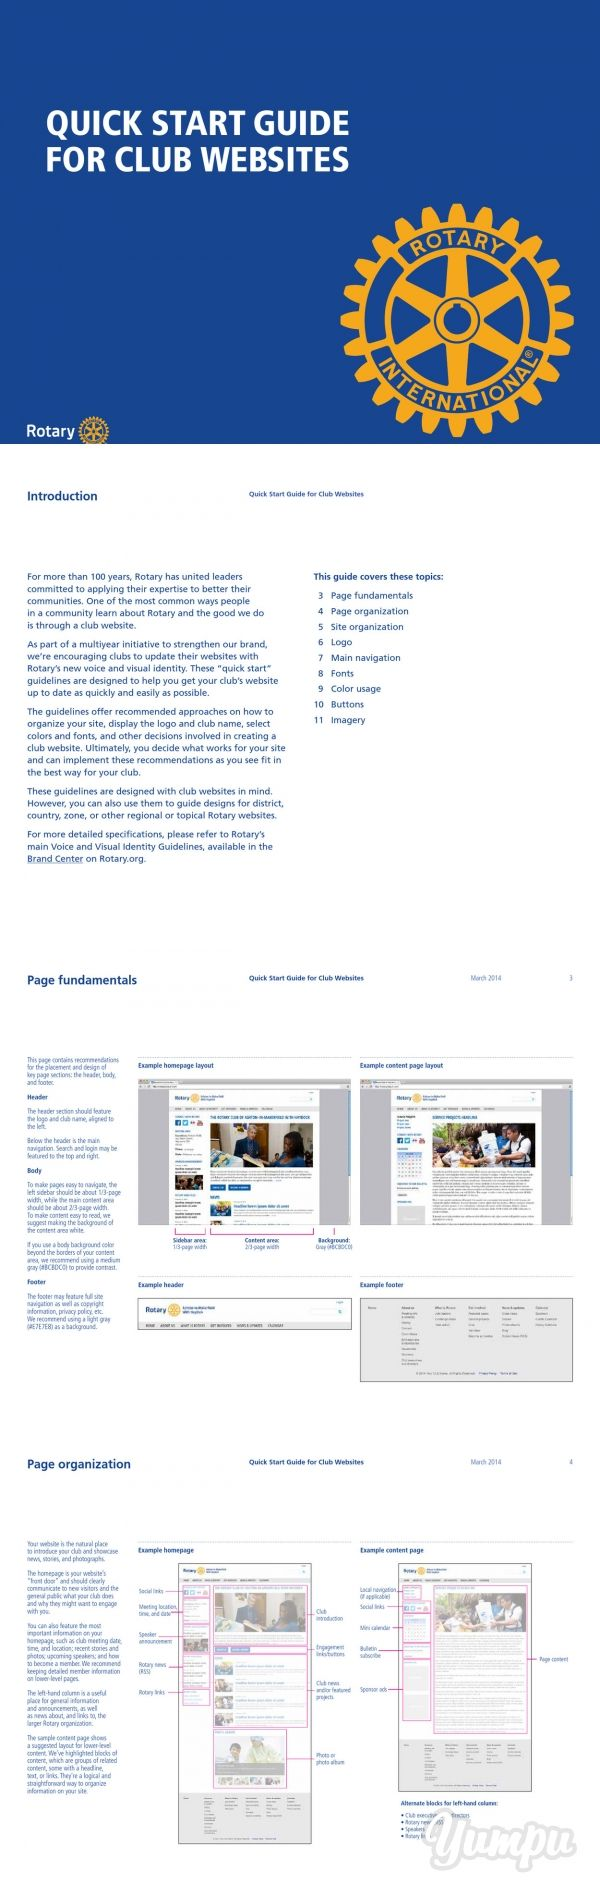 QUICK START GUIDE FOR CLUB WEBSITES - Magazine with 11 pages: Rotary International website reference